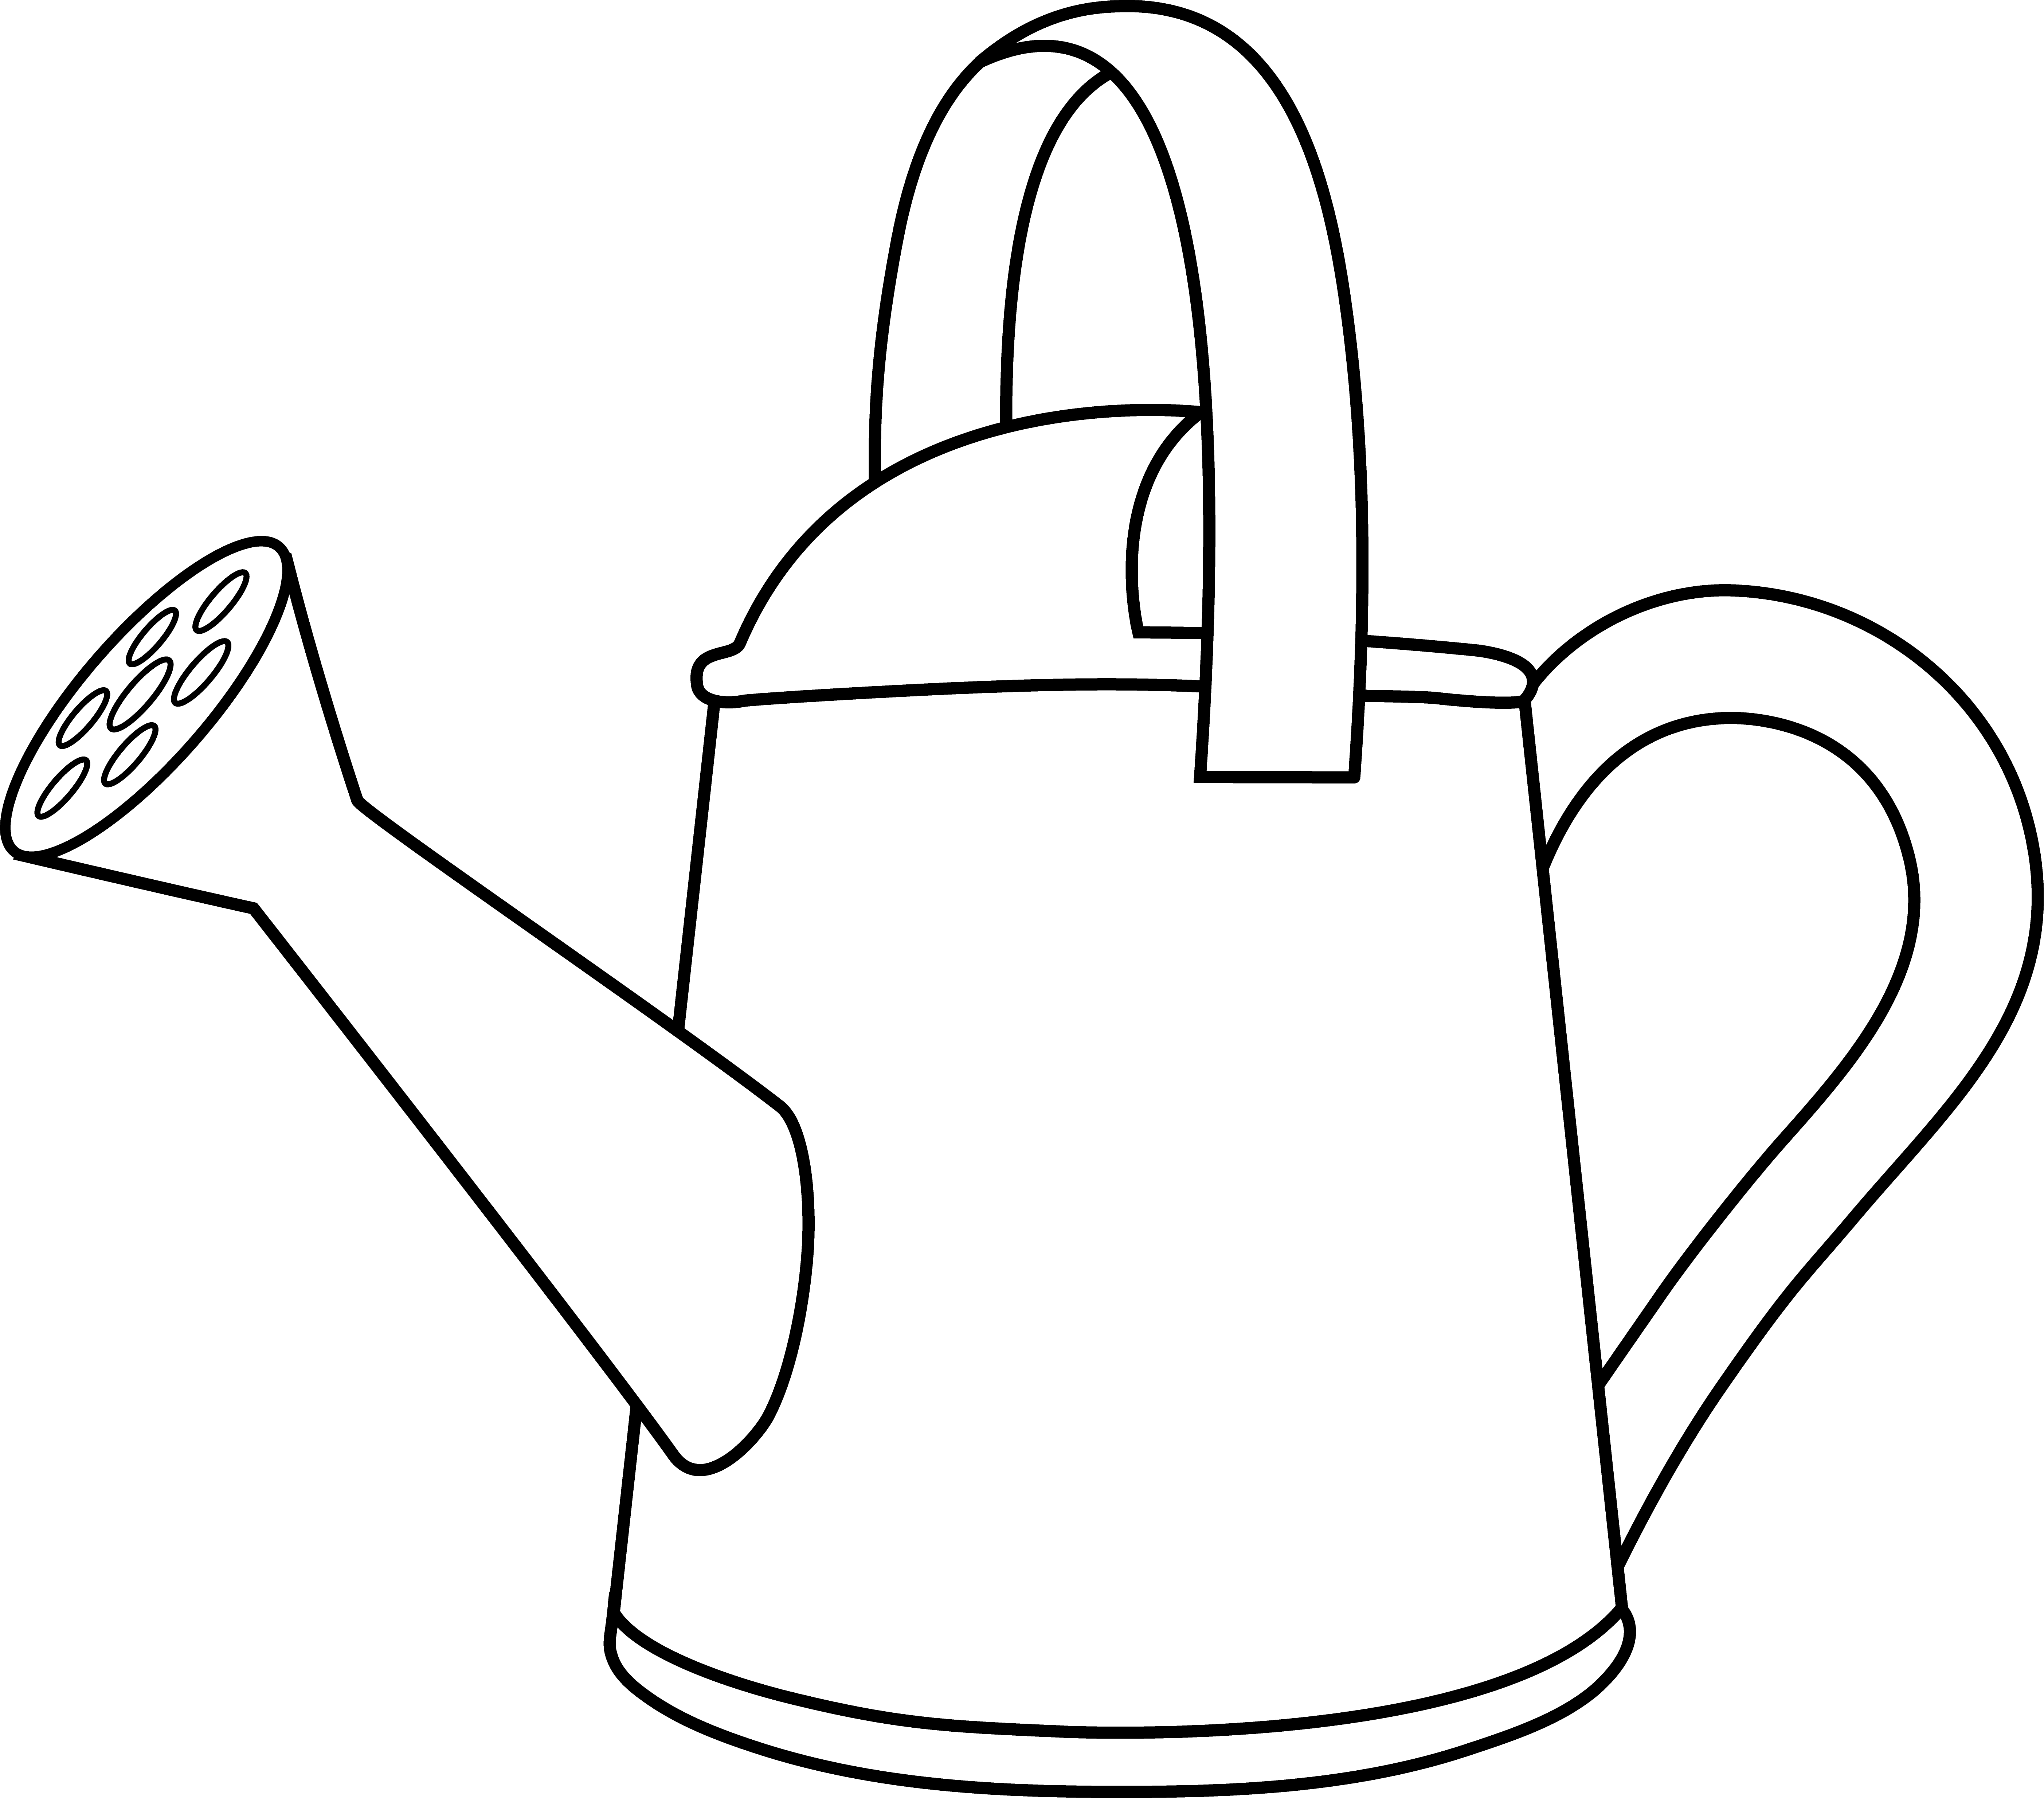 watering can lineart to color in cricut and svg pinterest rh pinterest com cute watering can clipart free watering can clipart images